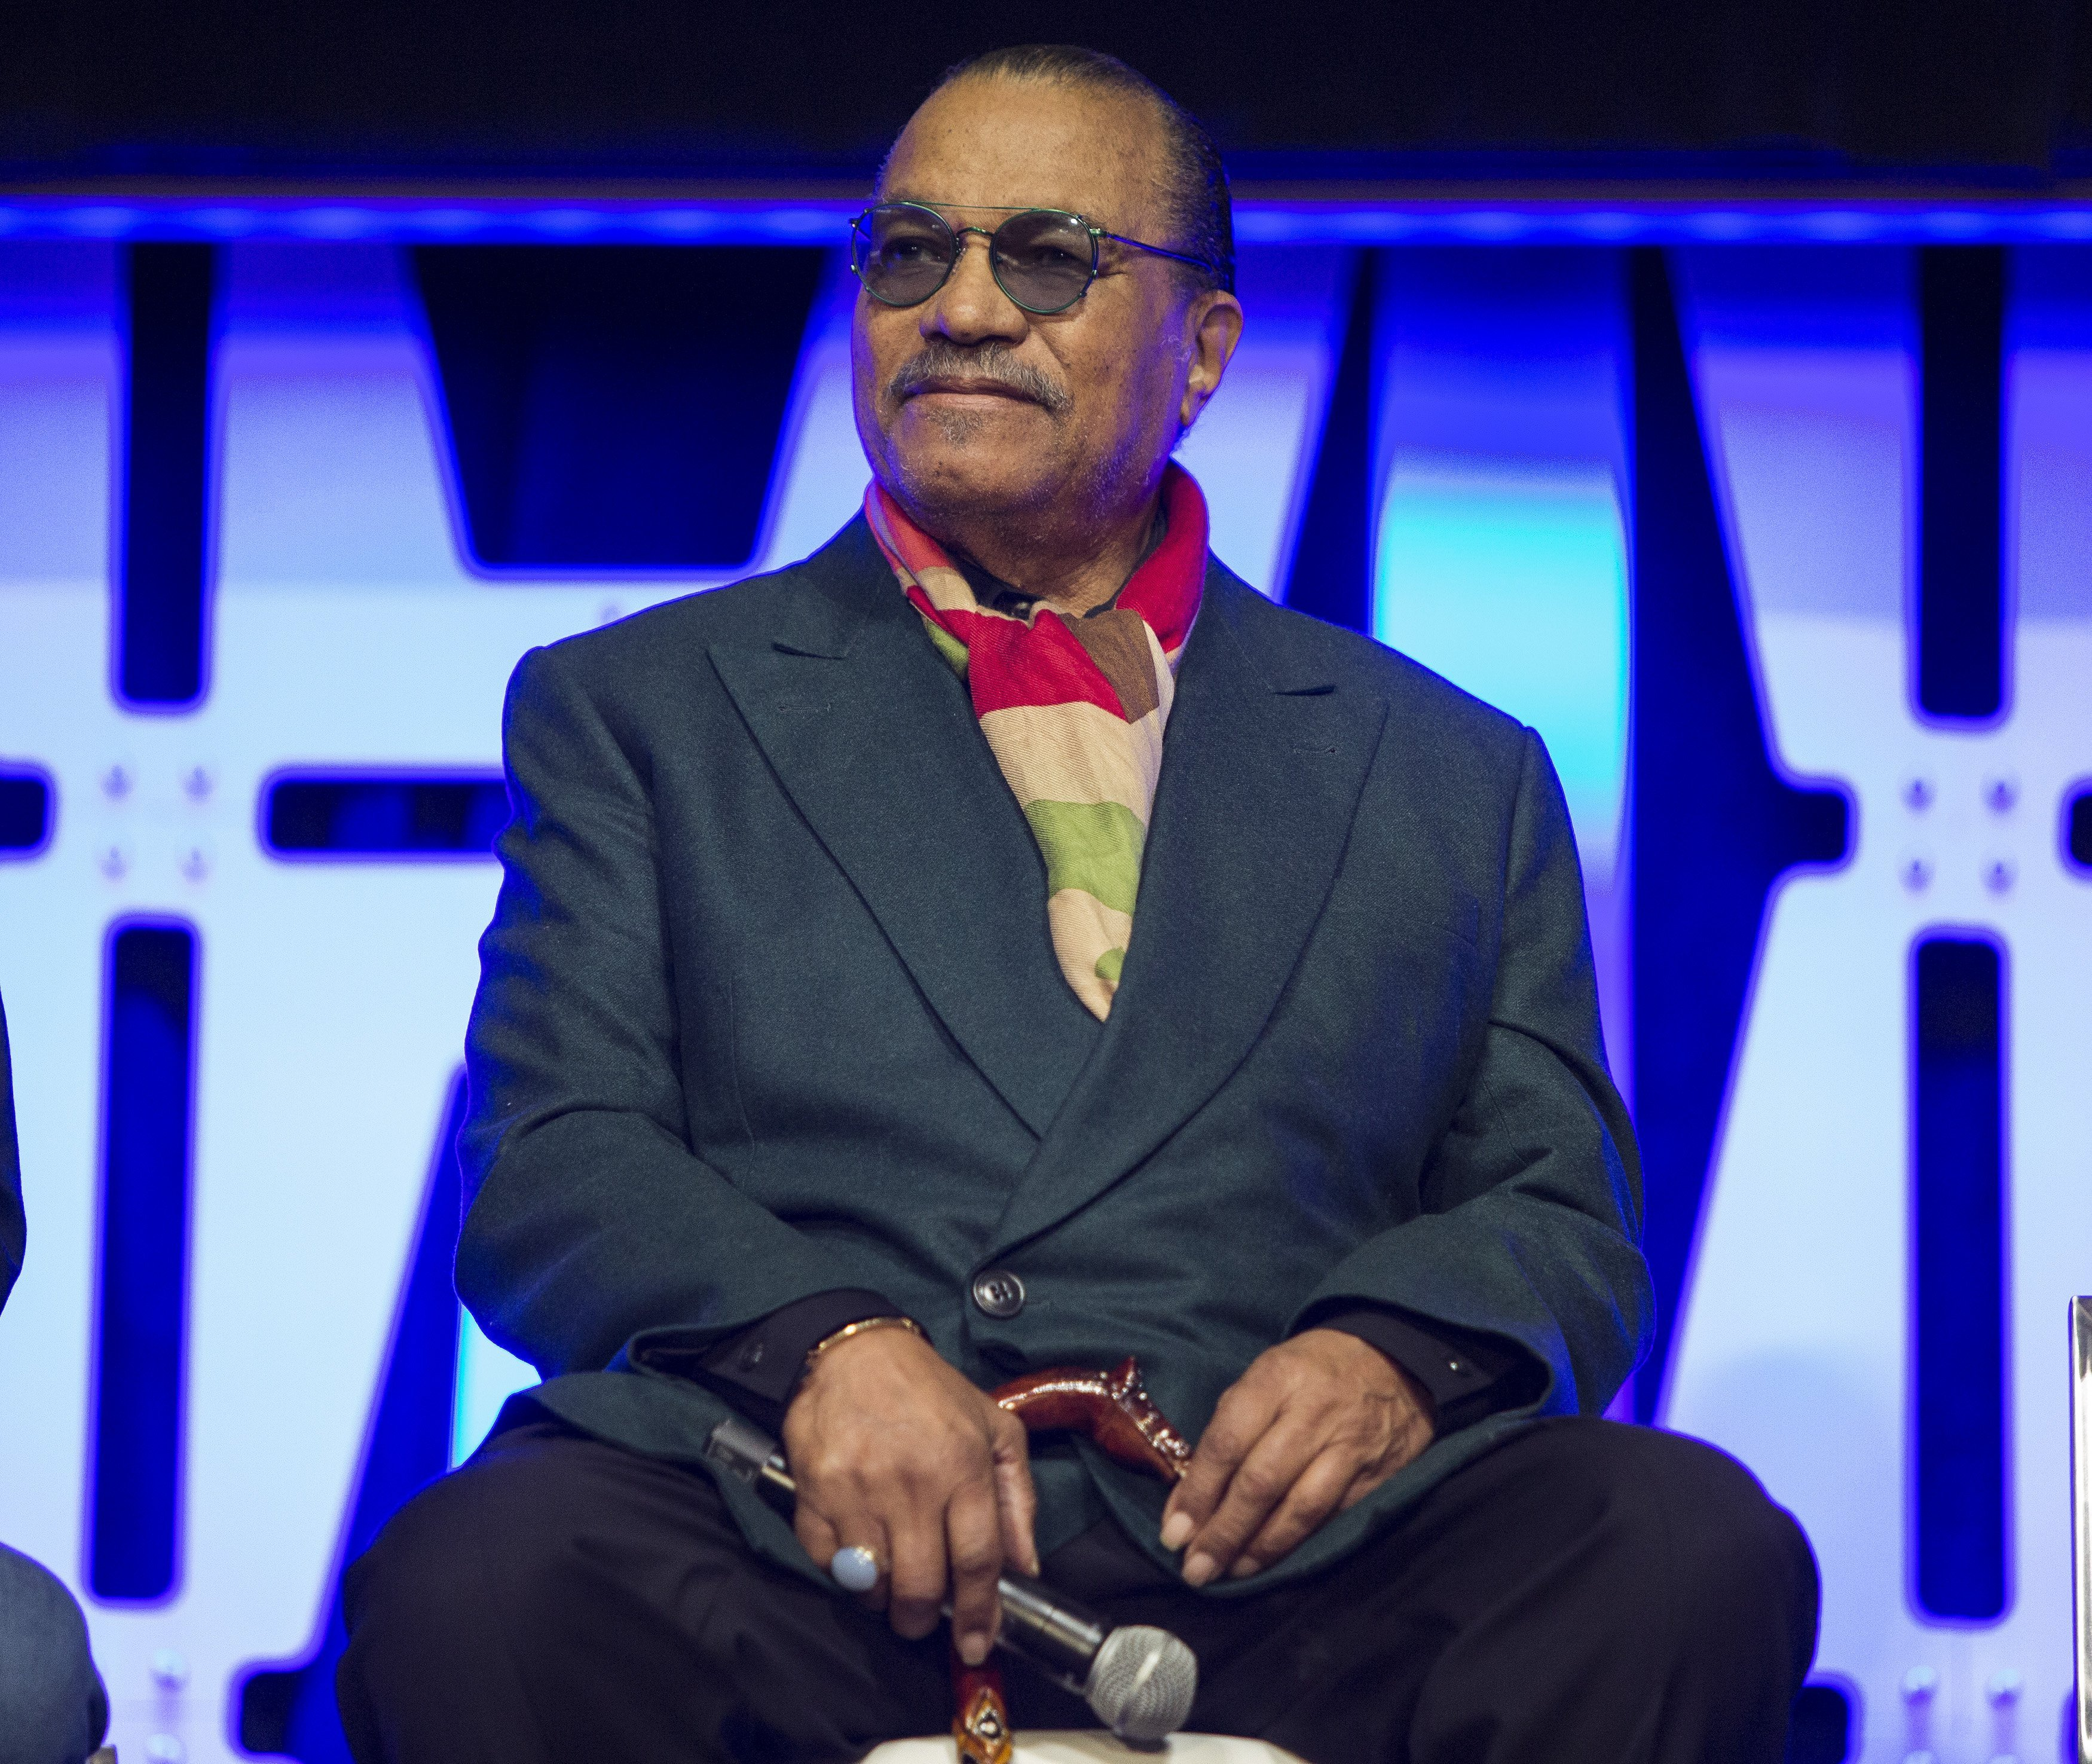 Billy Dee Williams speaking onstage at the Star Wars Celebration on April 12, 2019. | Photo: Getty Images